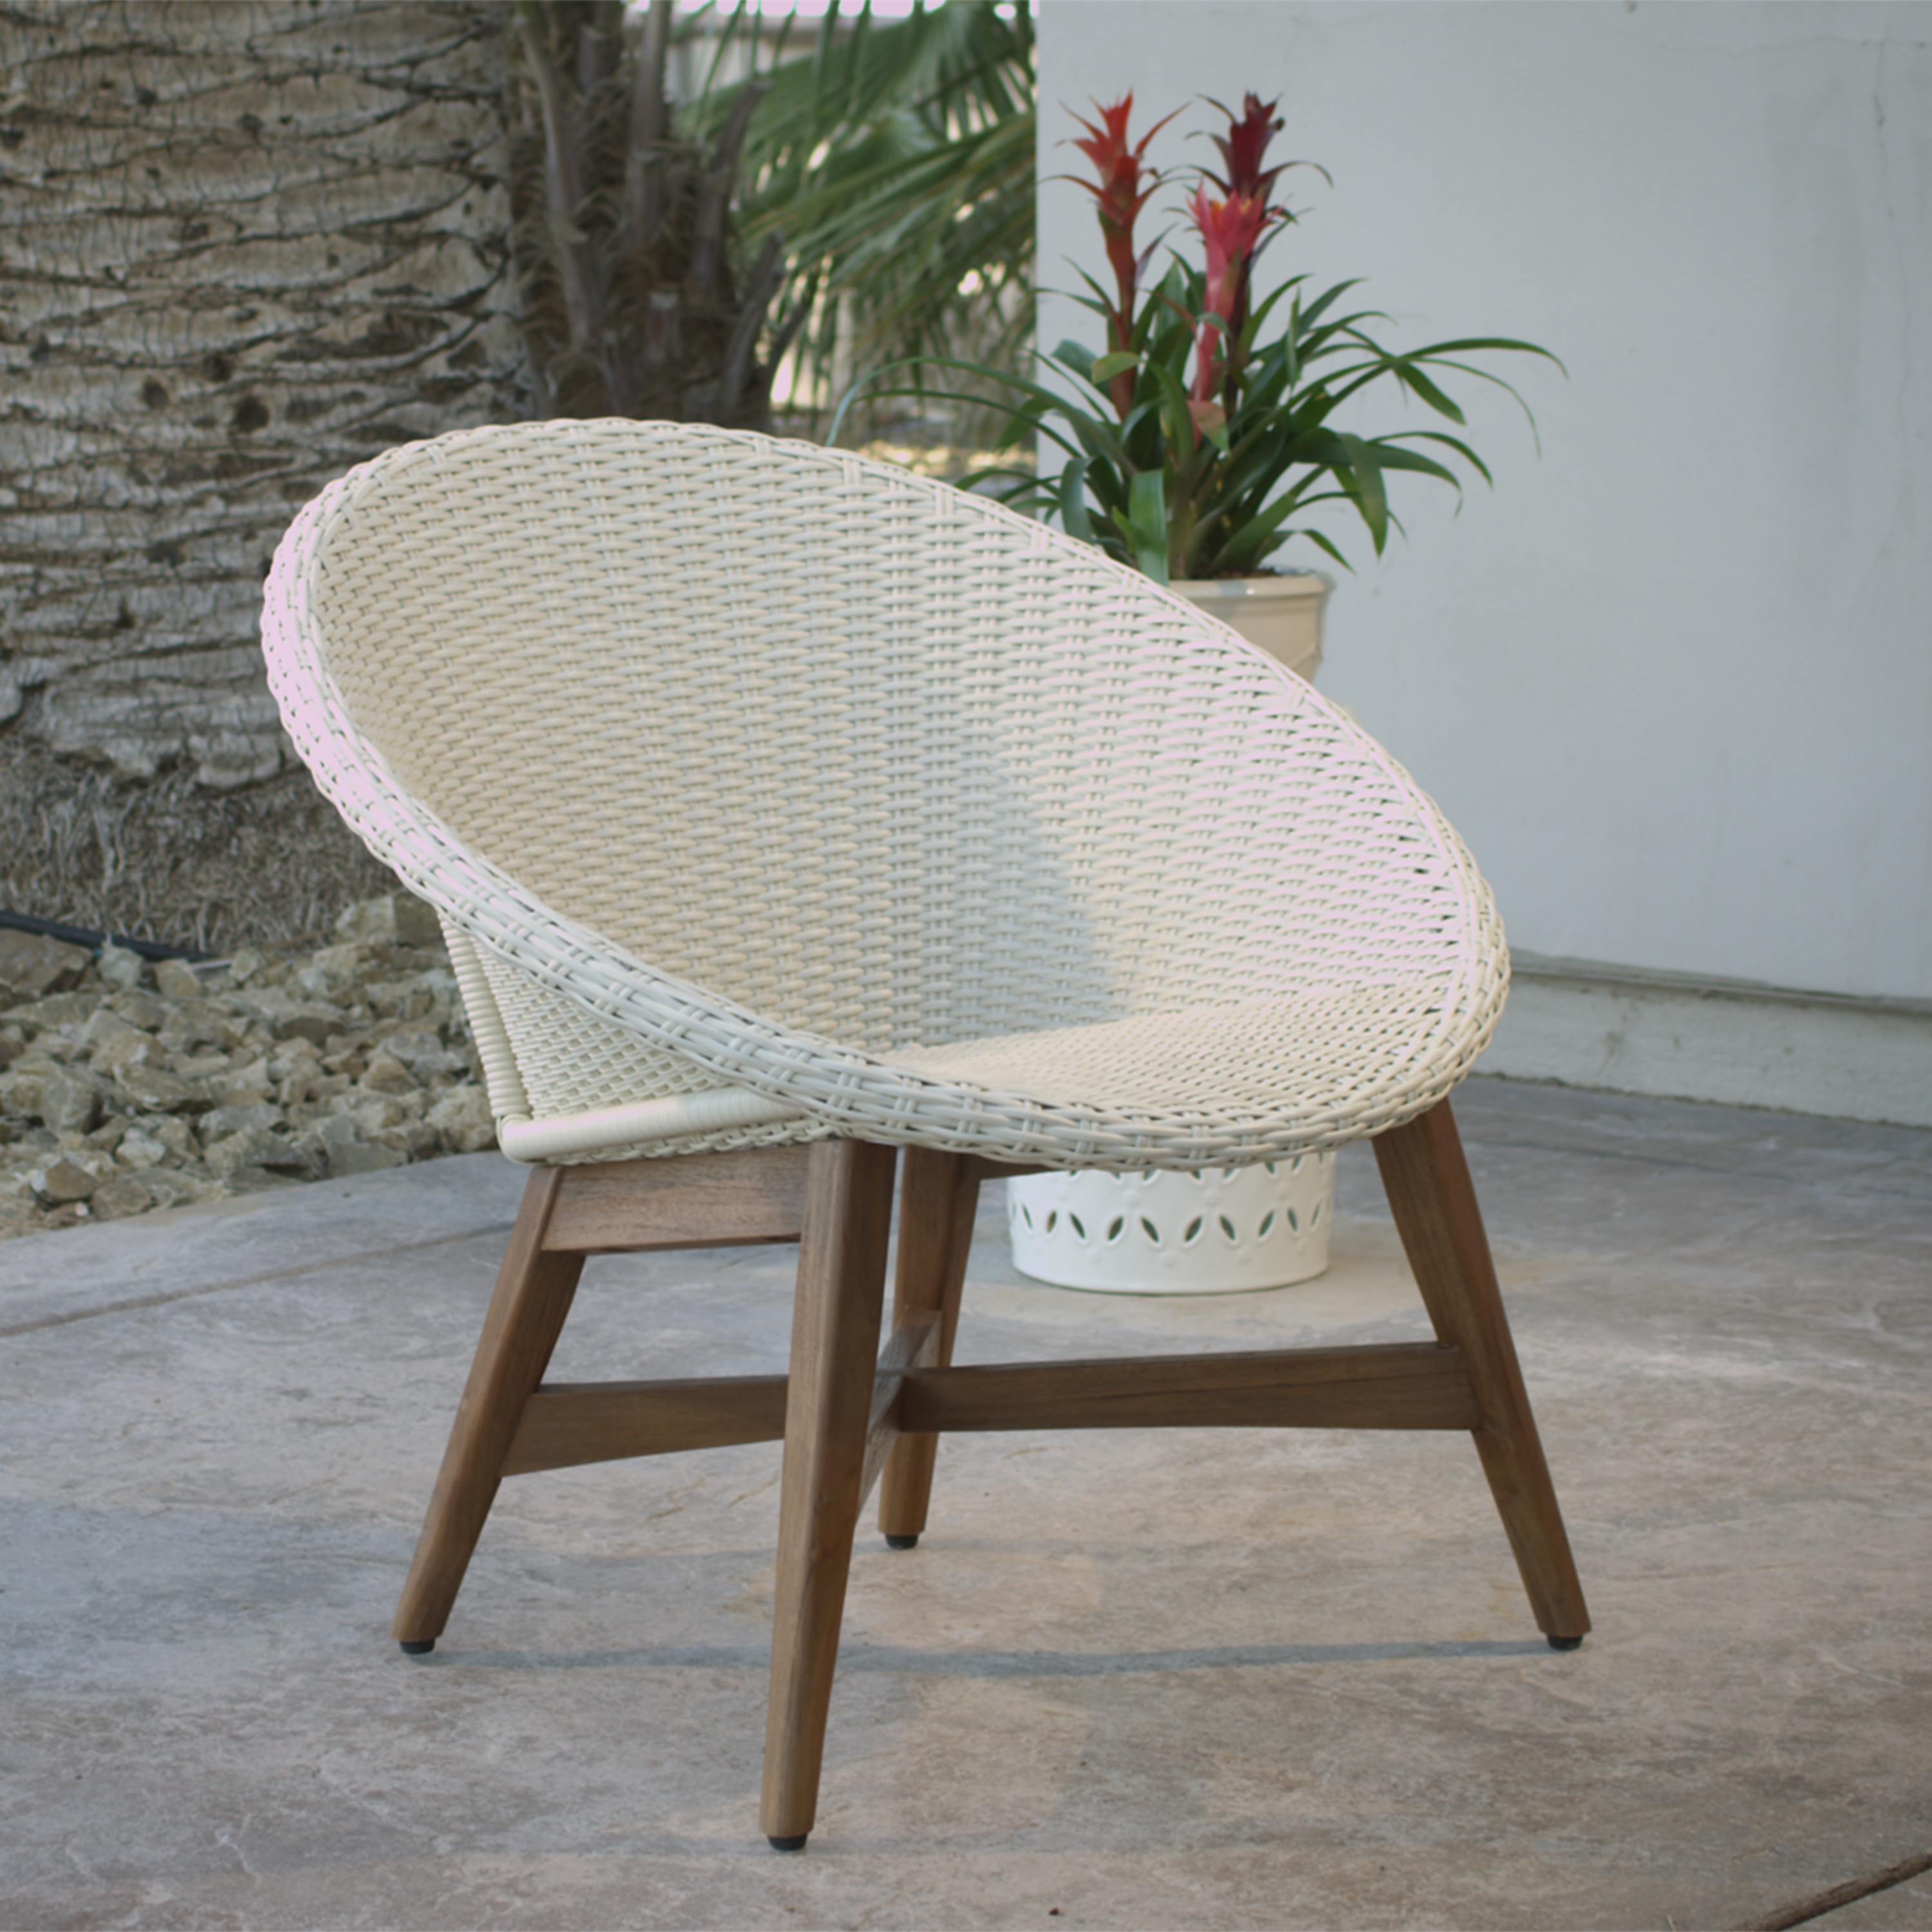 Round Outdoor Chair Round All Weather Wicker Vernazza Chairs Set Of 2 World